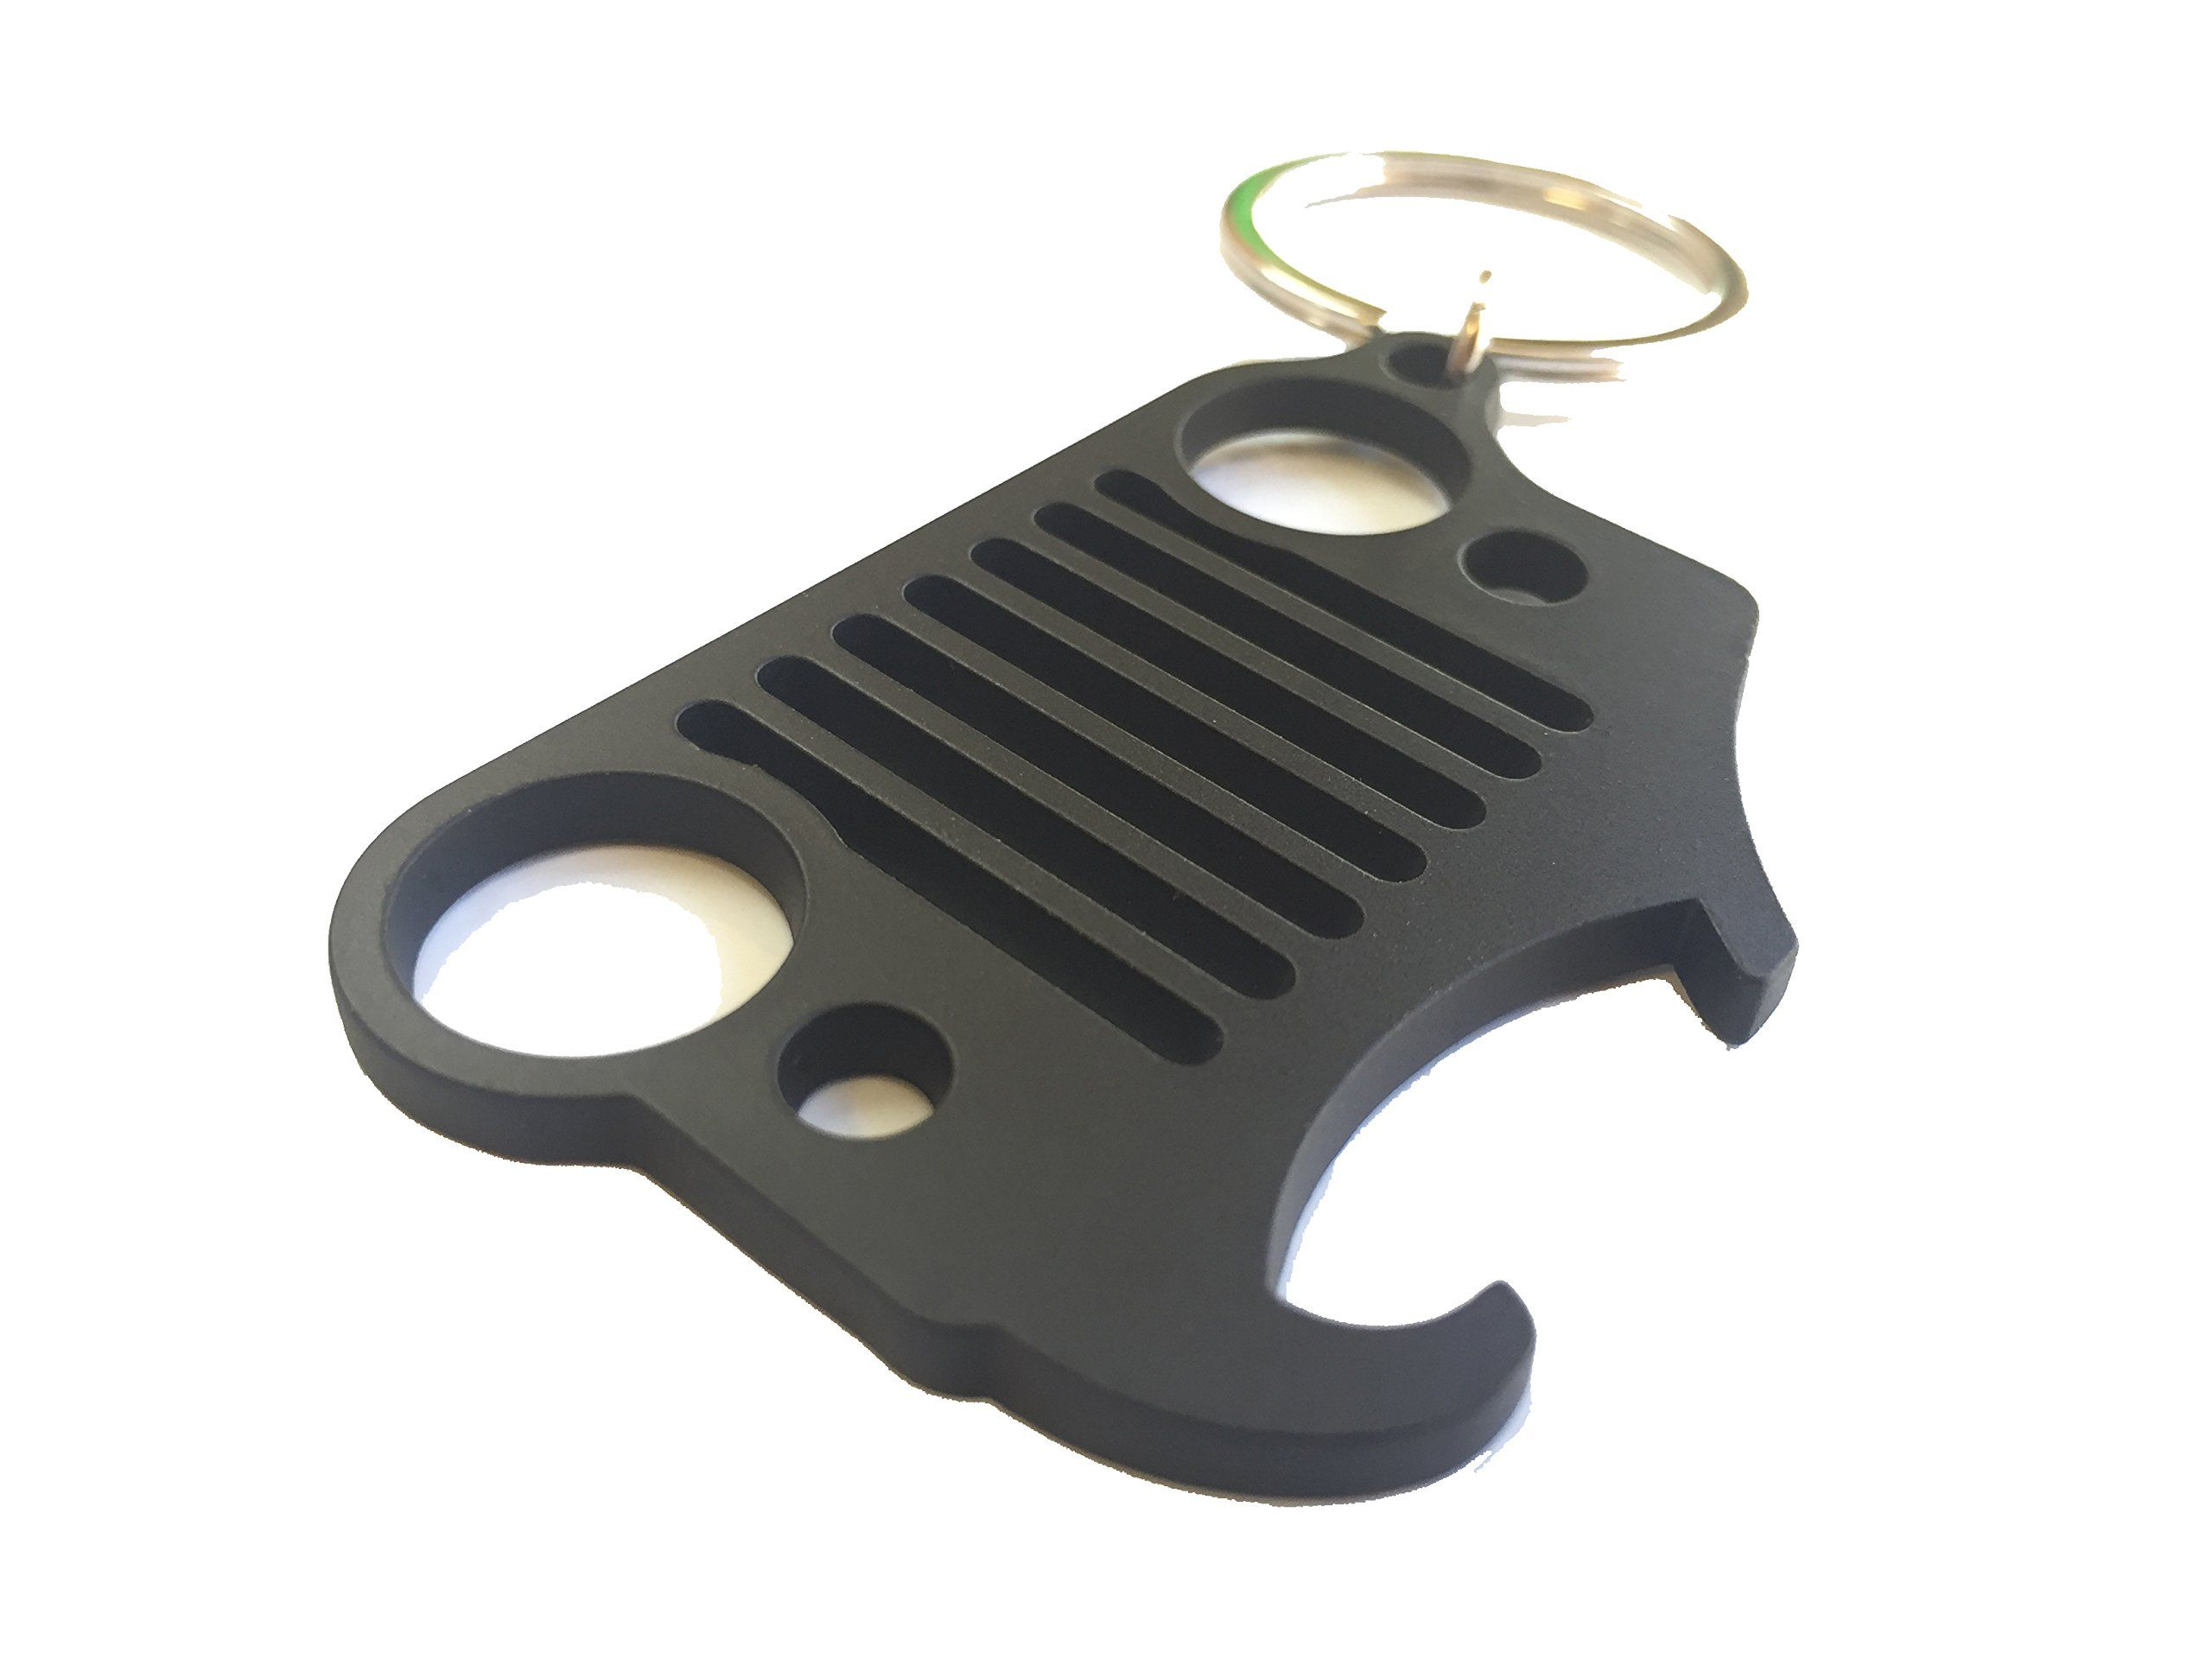 Off Camber Design Jeep Grill Key Chain Bottle Opener Keychain